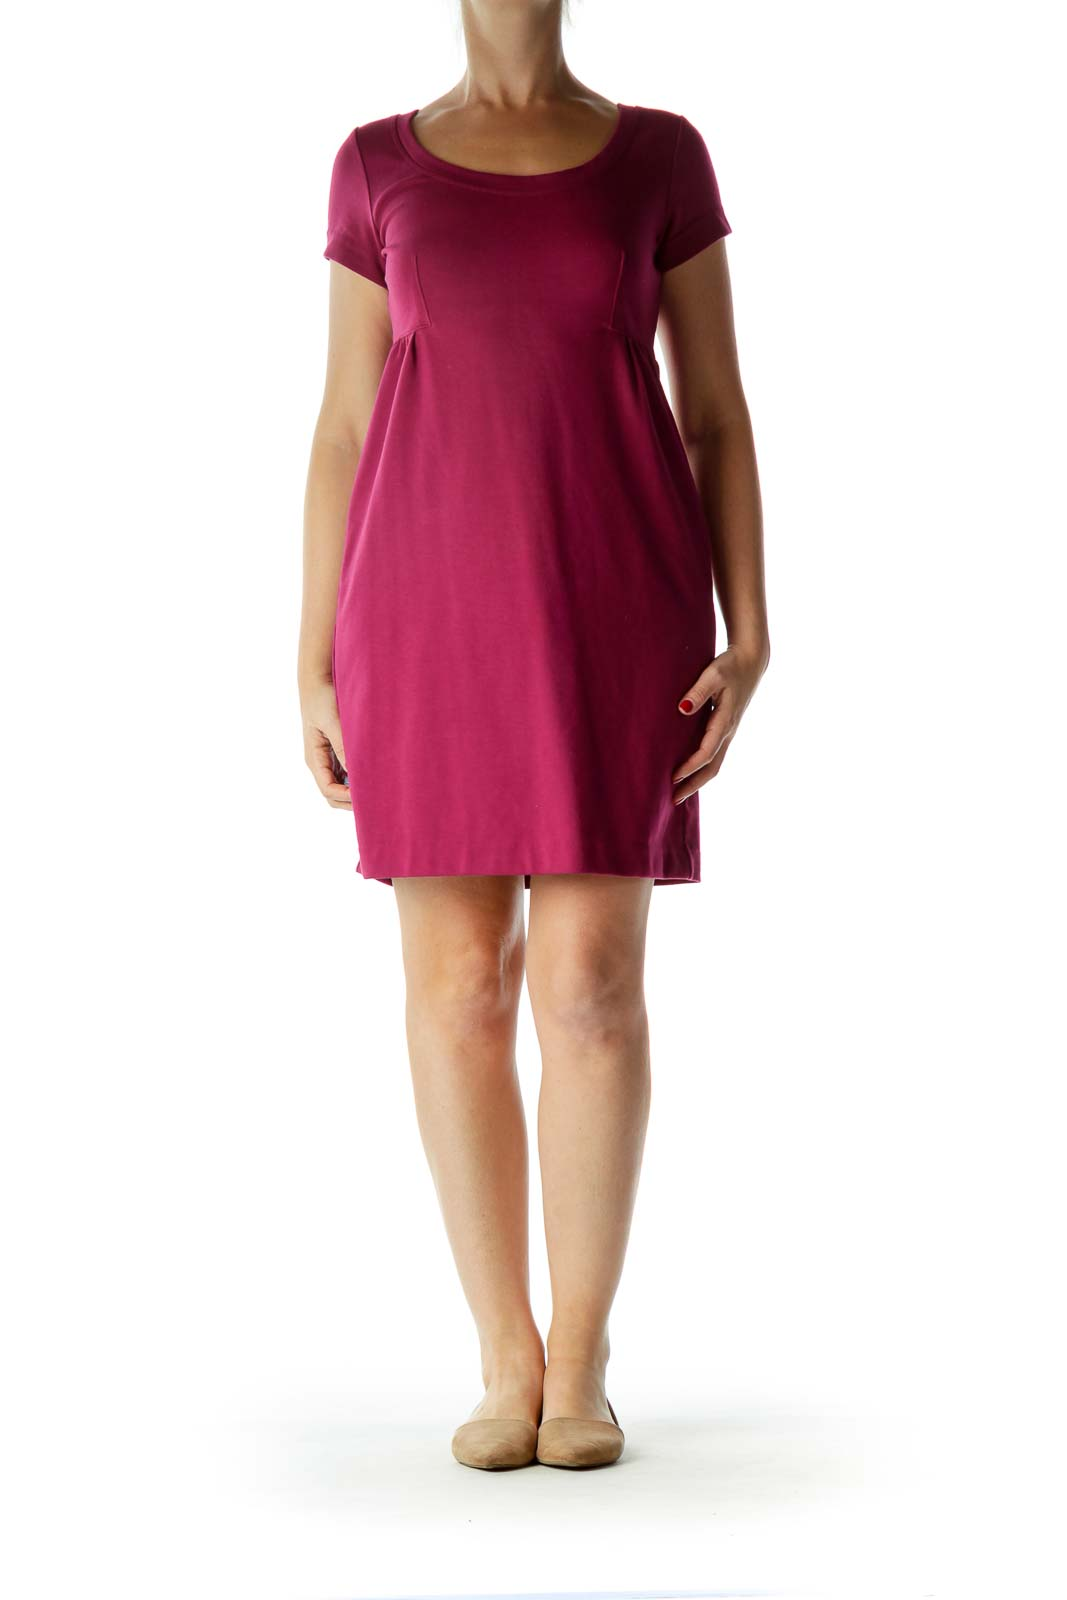 Purple Shortsleeve Round Neck Work Dress